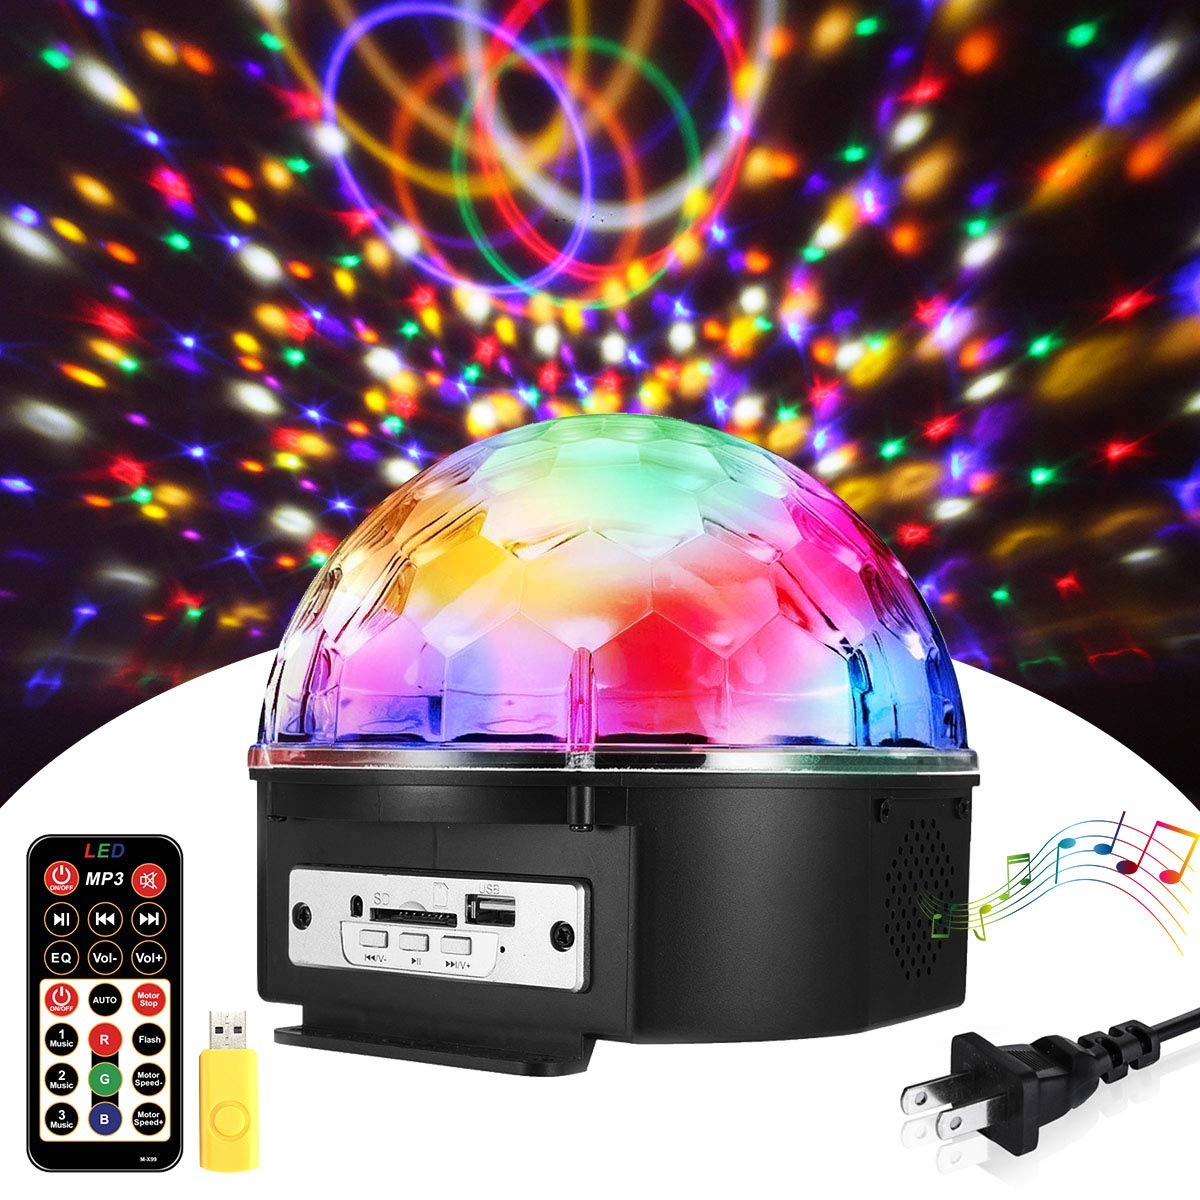 Musical Instruments & Gear Aspiring Led Moving Head Lighting Fixture For Parties And Events Stage Lighting & Effects